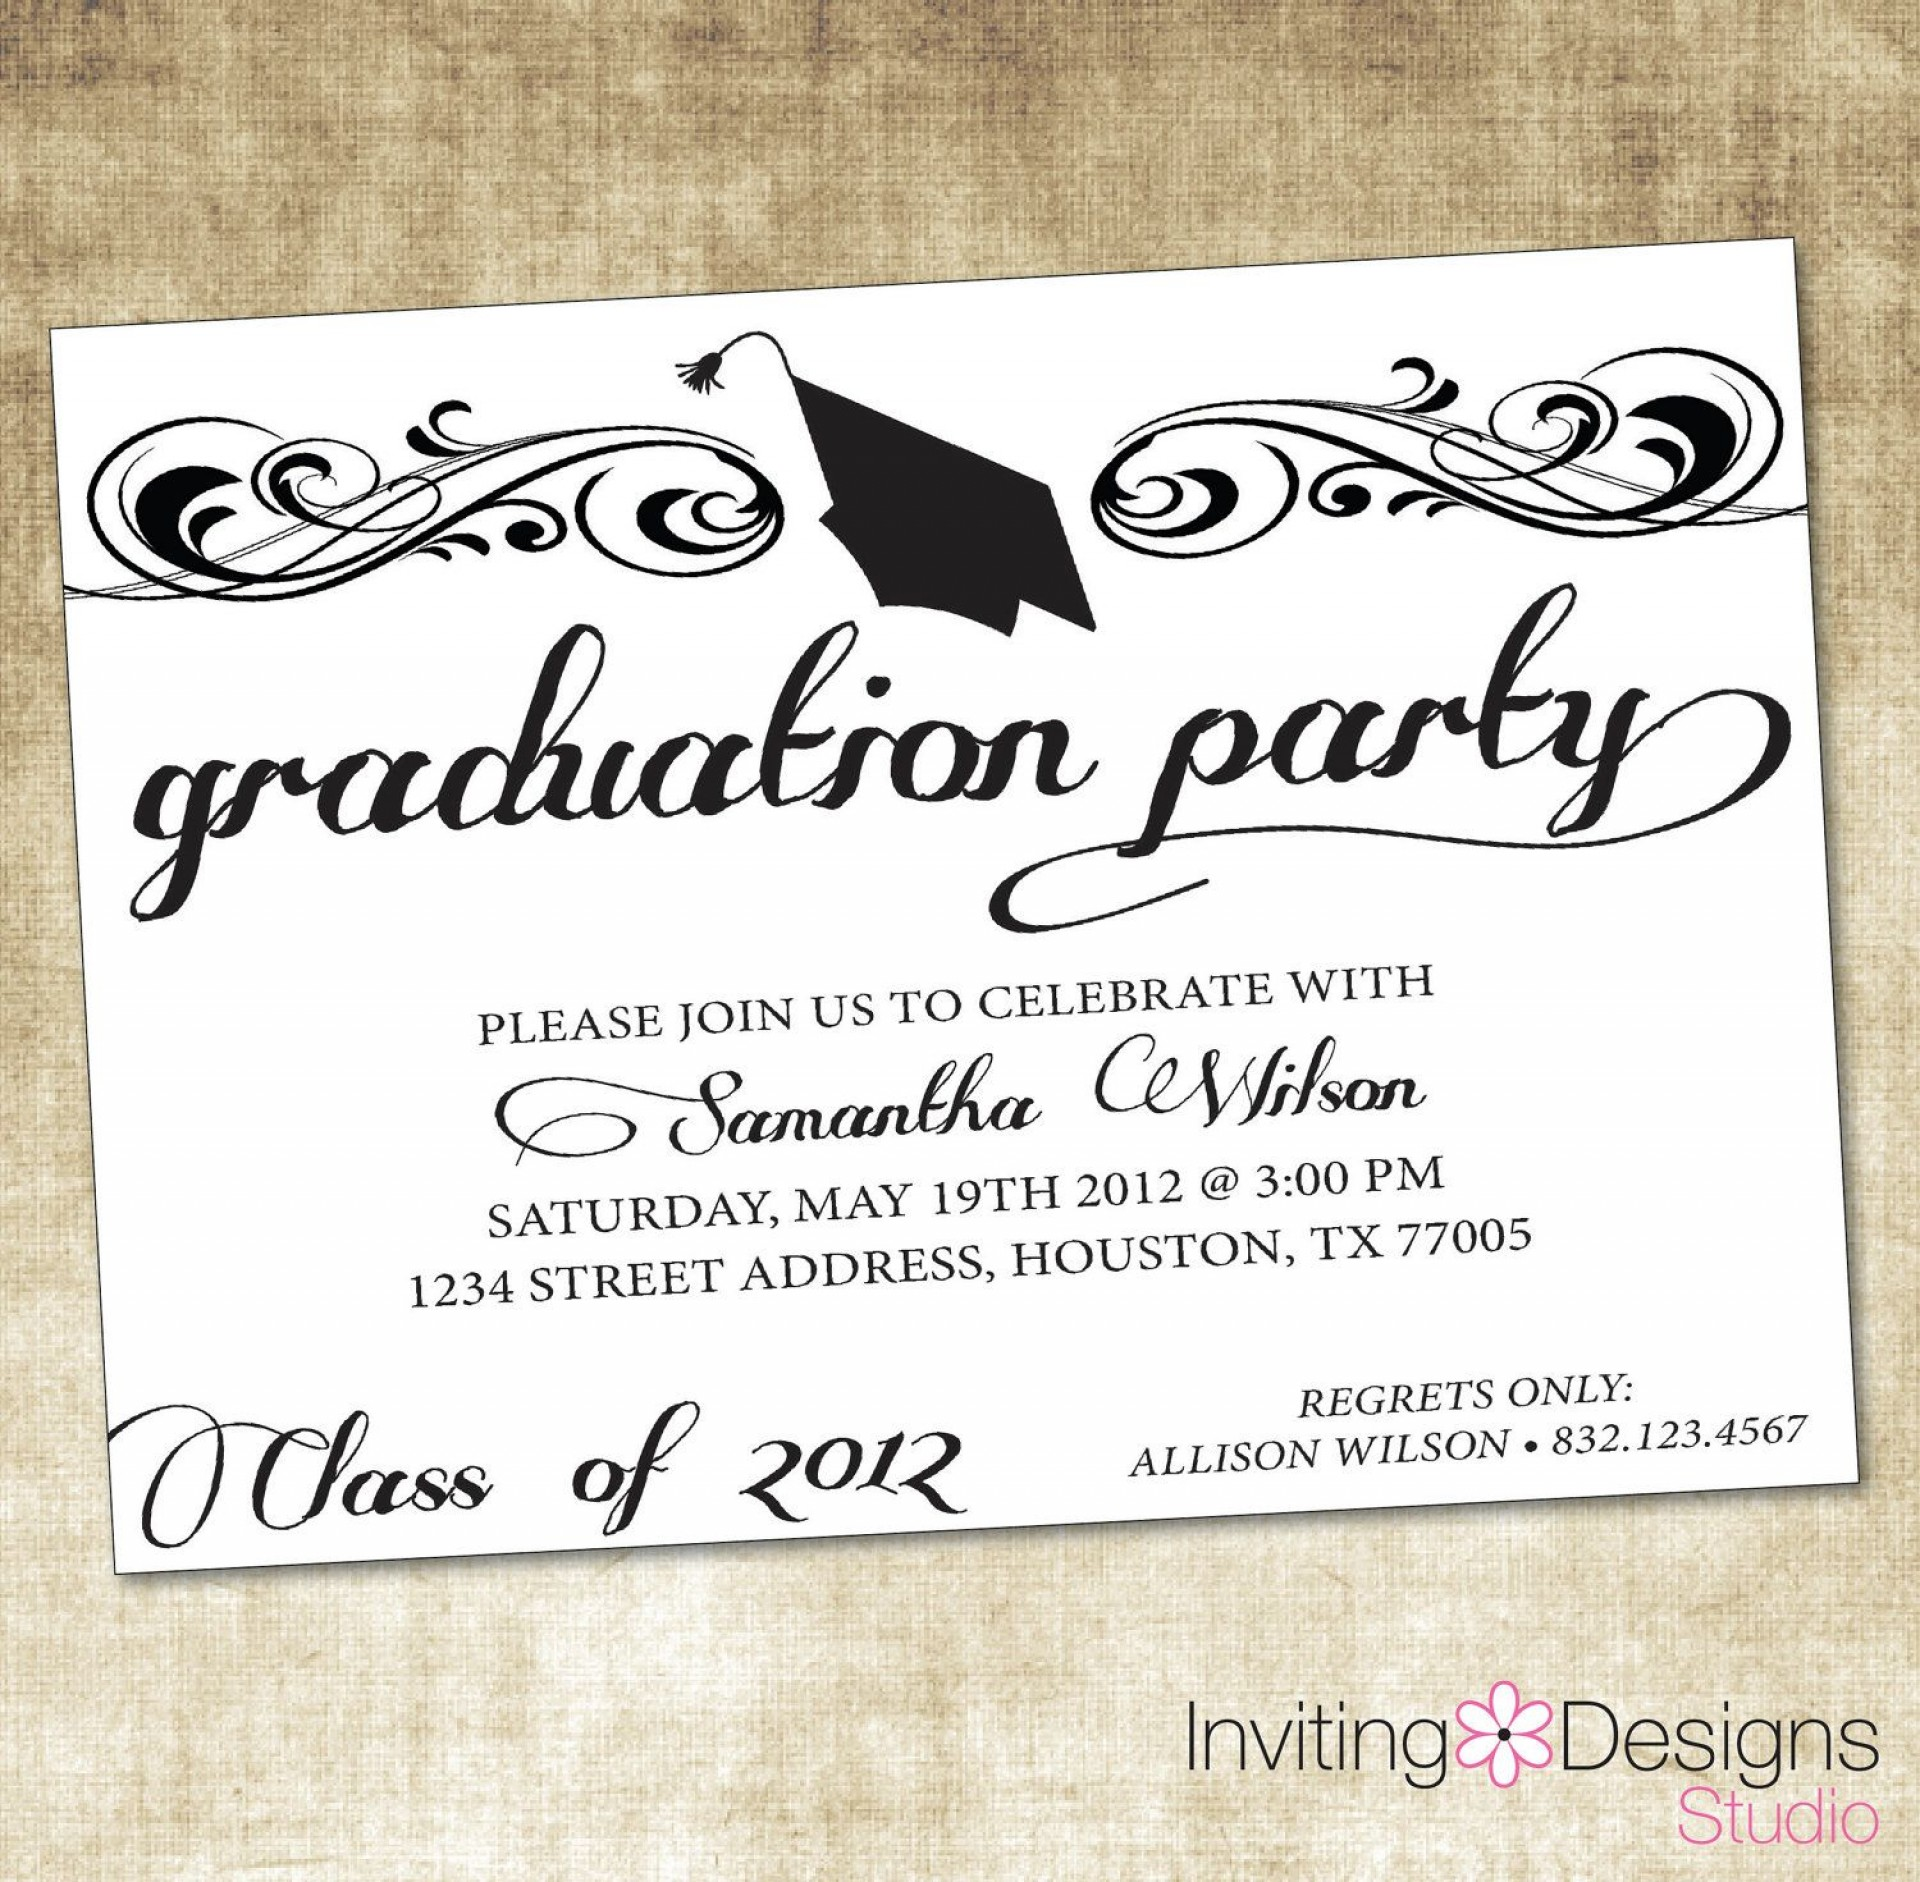 000 Marvelou College Graduation Invitation Template Highest Quality  Templates Free Party1920